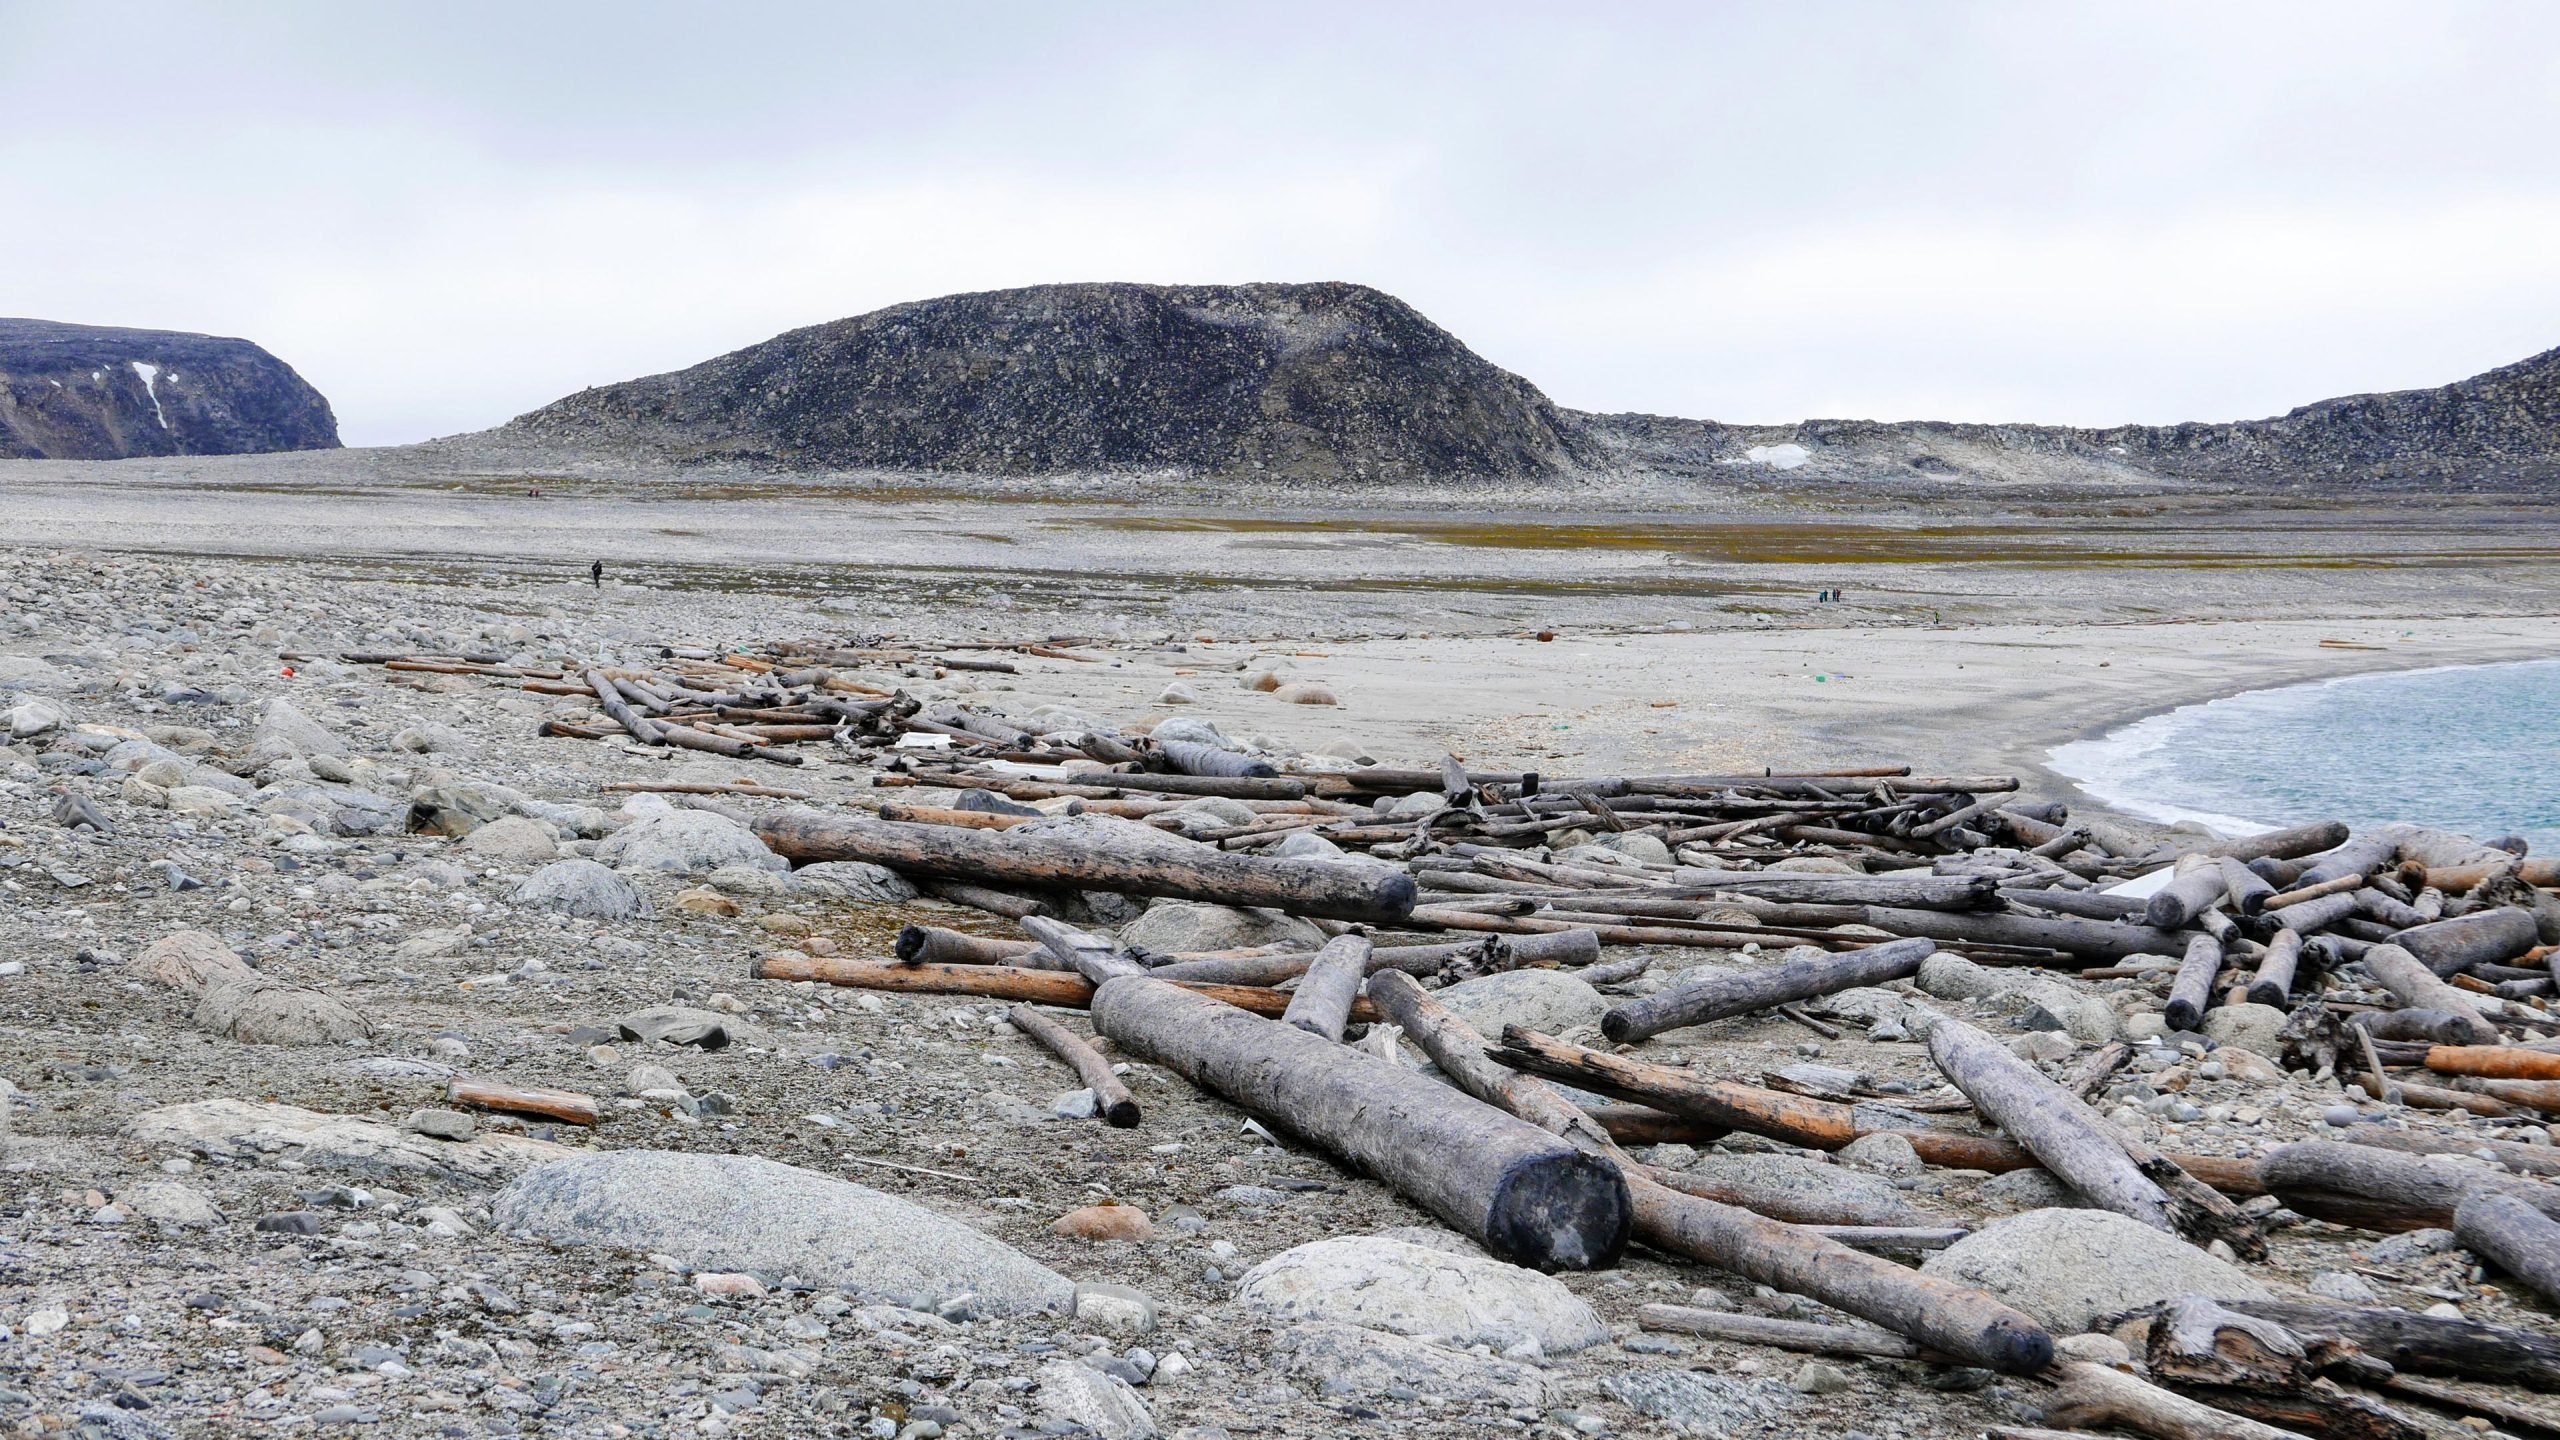 Driftwood on Svalbard Beach scaled, Ancient Driftwood Tracks 500 Years of Arctic Warming, Currents, and Sea Ice, HOPE, ,Ancient, Arctic, Currents, Driftwood, ice, science news, Sea, SPACE, spacelivenews, tracks, warming, Years, SpaceLiveNews